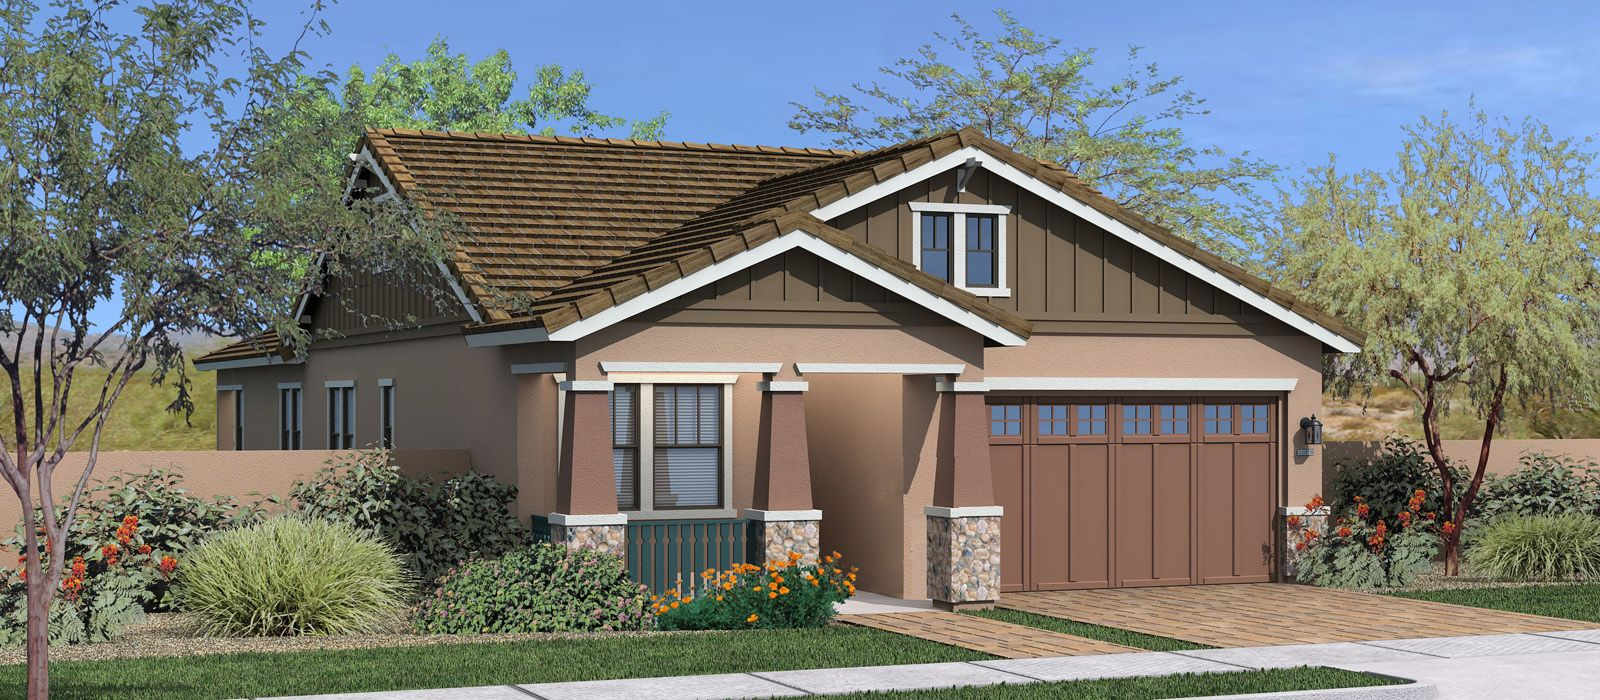 New Construction Homes & Plans in Gilbert, AZ | 2,371 Homes